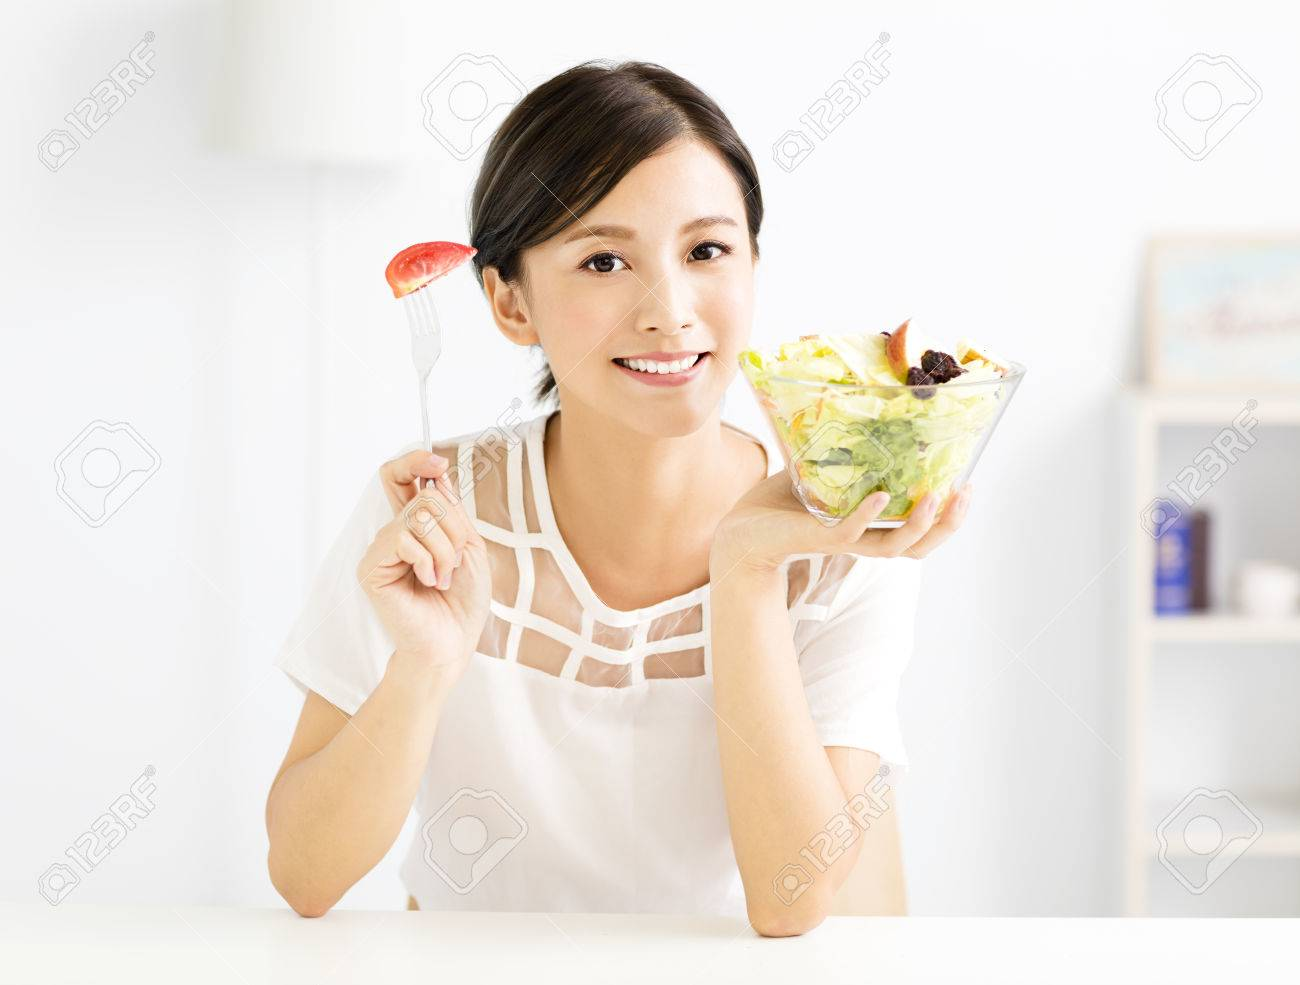 beautiful young woman eating healthy food - 63240222